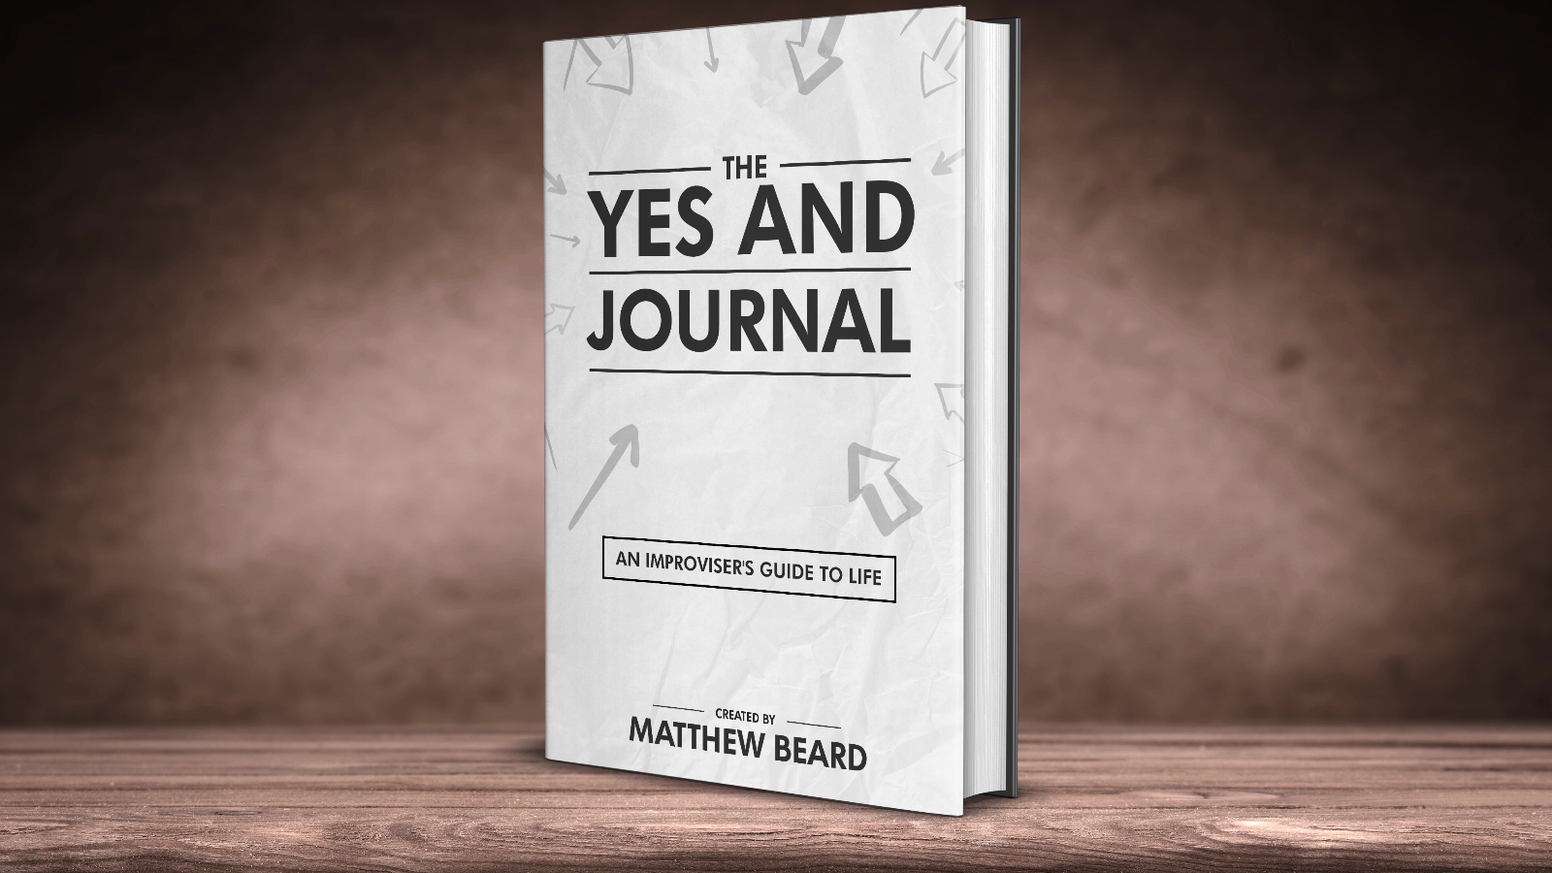 The Yes And Journal is a guide to developmental improv - a series of written prompts on gratitude, acceptance, mindfulness, and more.